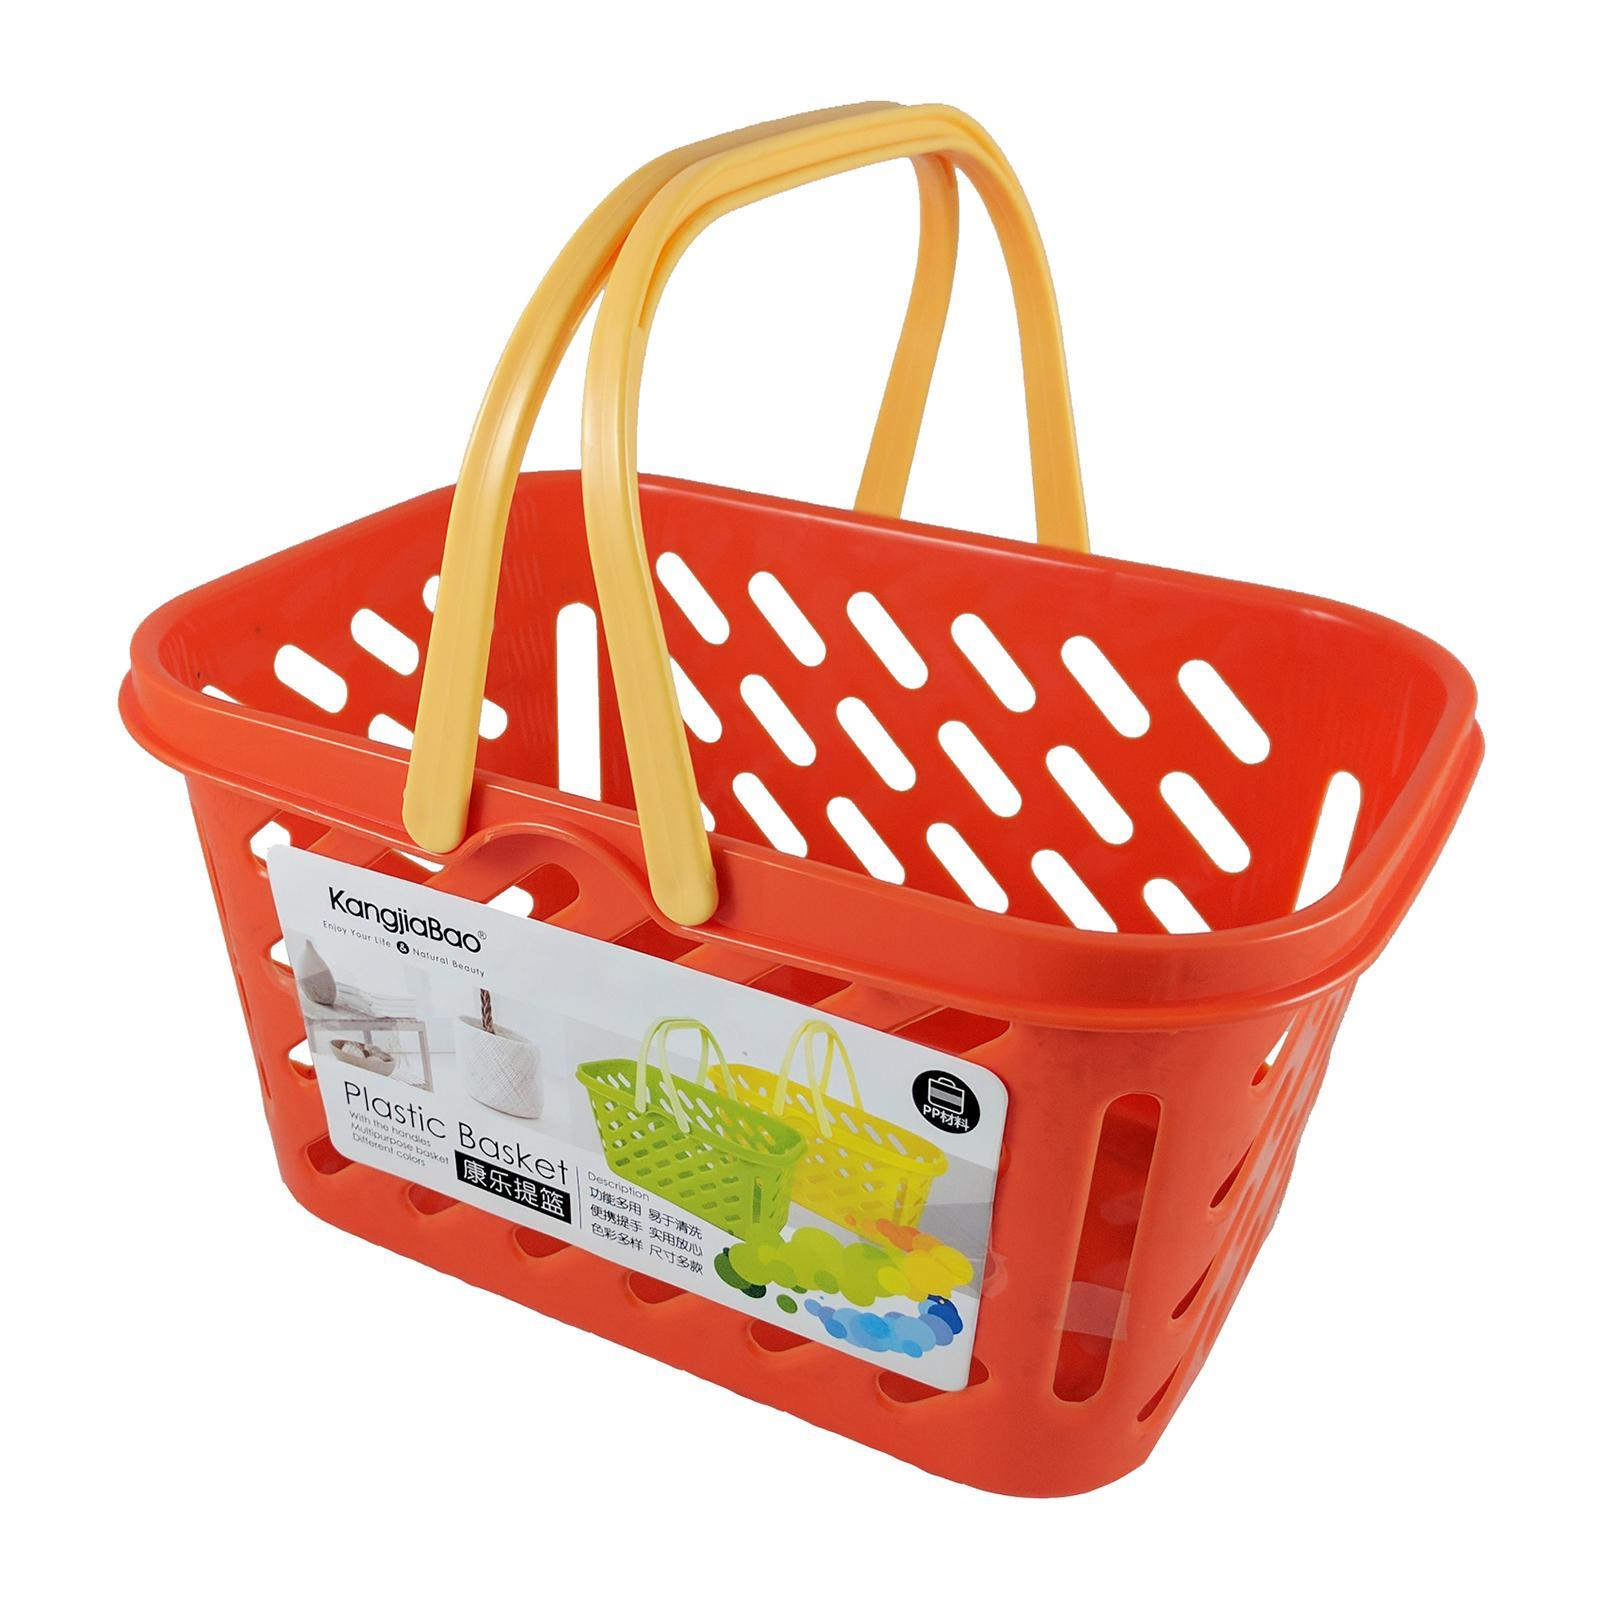 KangjiaBao Small Plastic Multipurpose Basket With Handles 25x17.5x13 Cm (Orange)